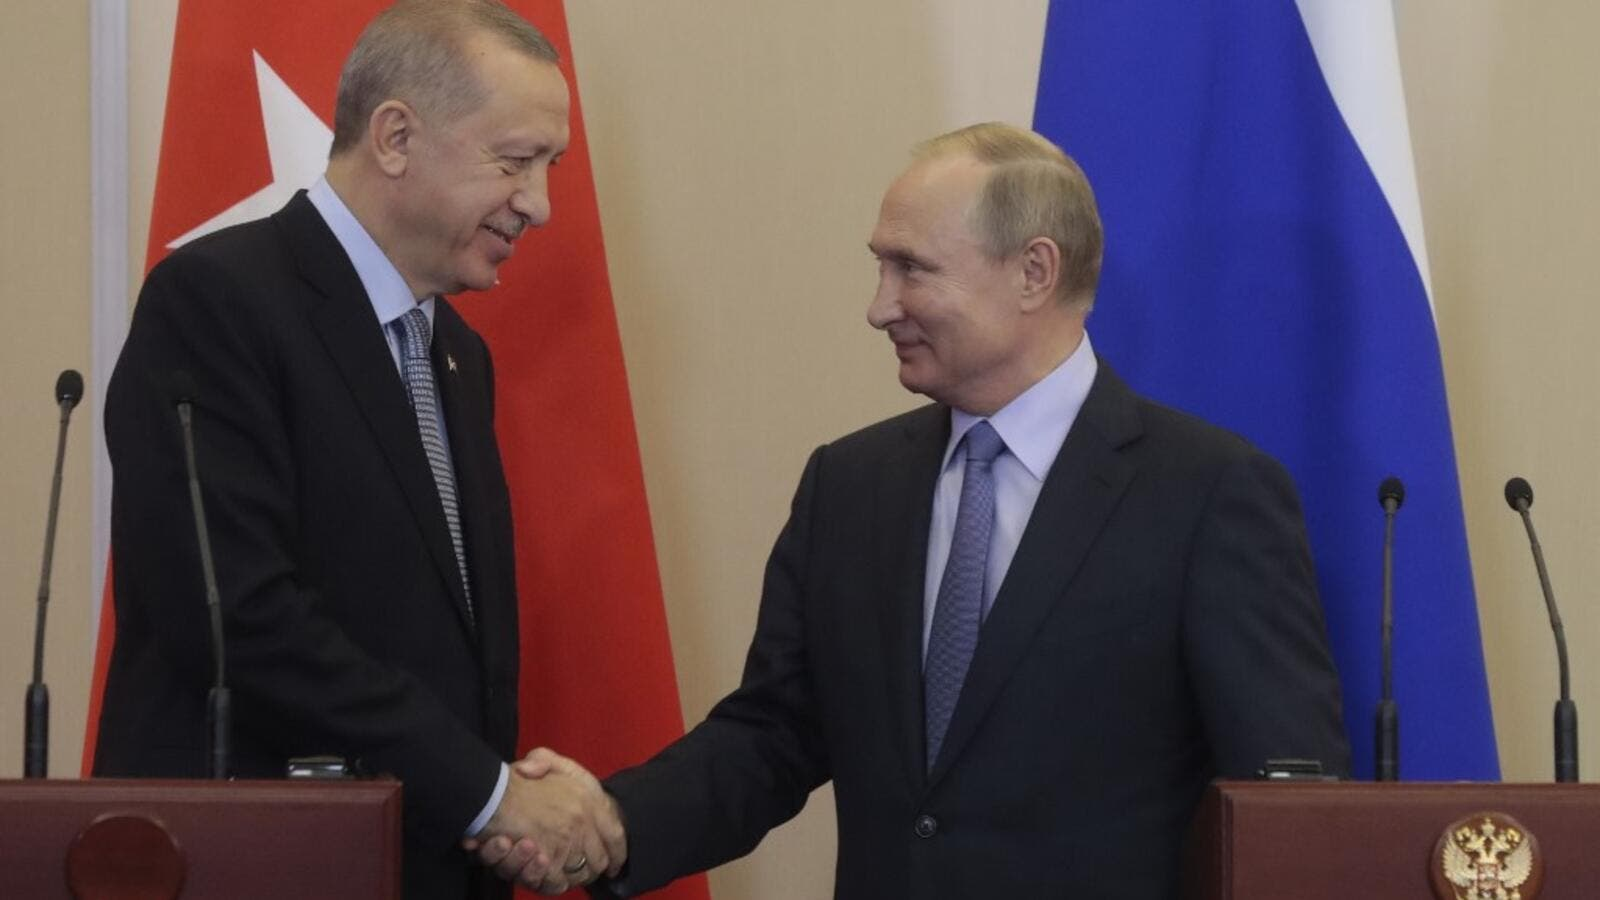 Russian President Vladimir Putin (R) and his Turkish counterpart Recep Tayyip Erdogan shake hands during a joint press conference following their talks in the Black sea resort of Sochi on October 22, 2019. (Sergei CHIRIKOV / POOL / AFP)